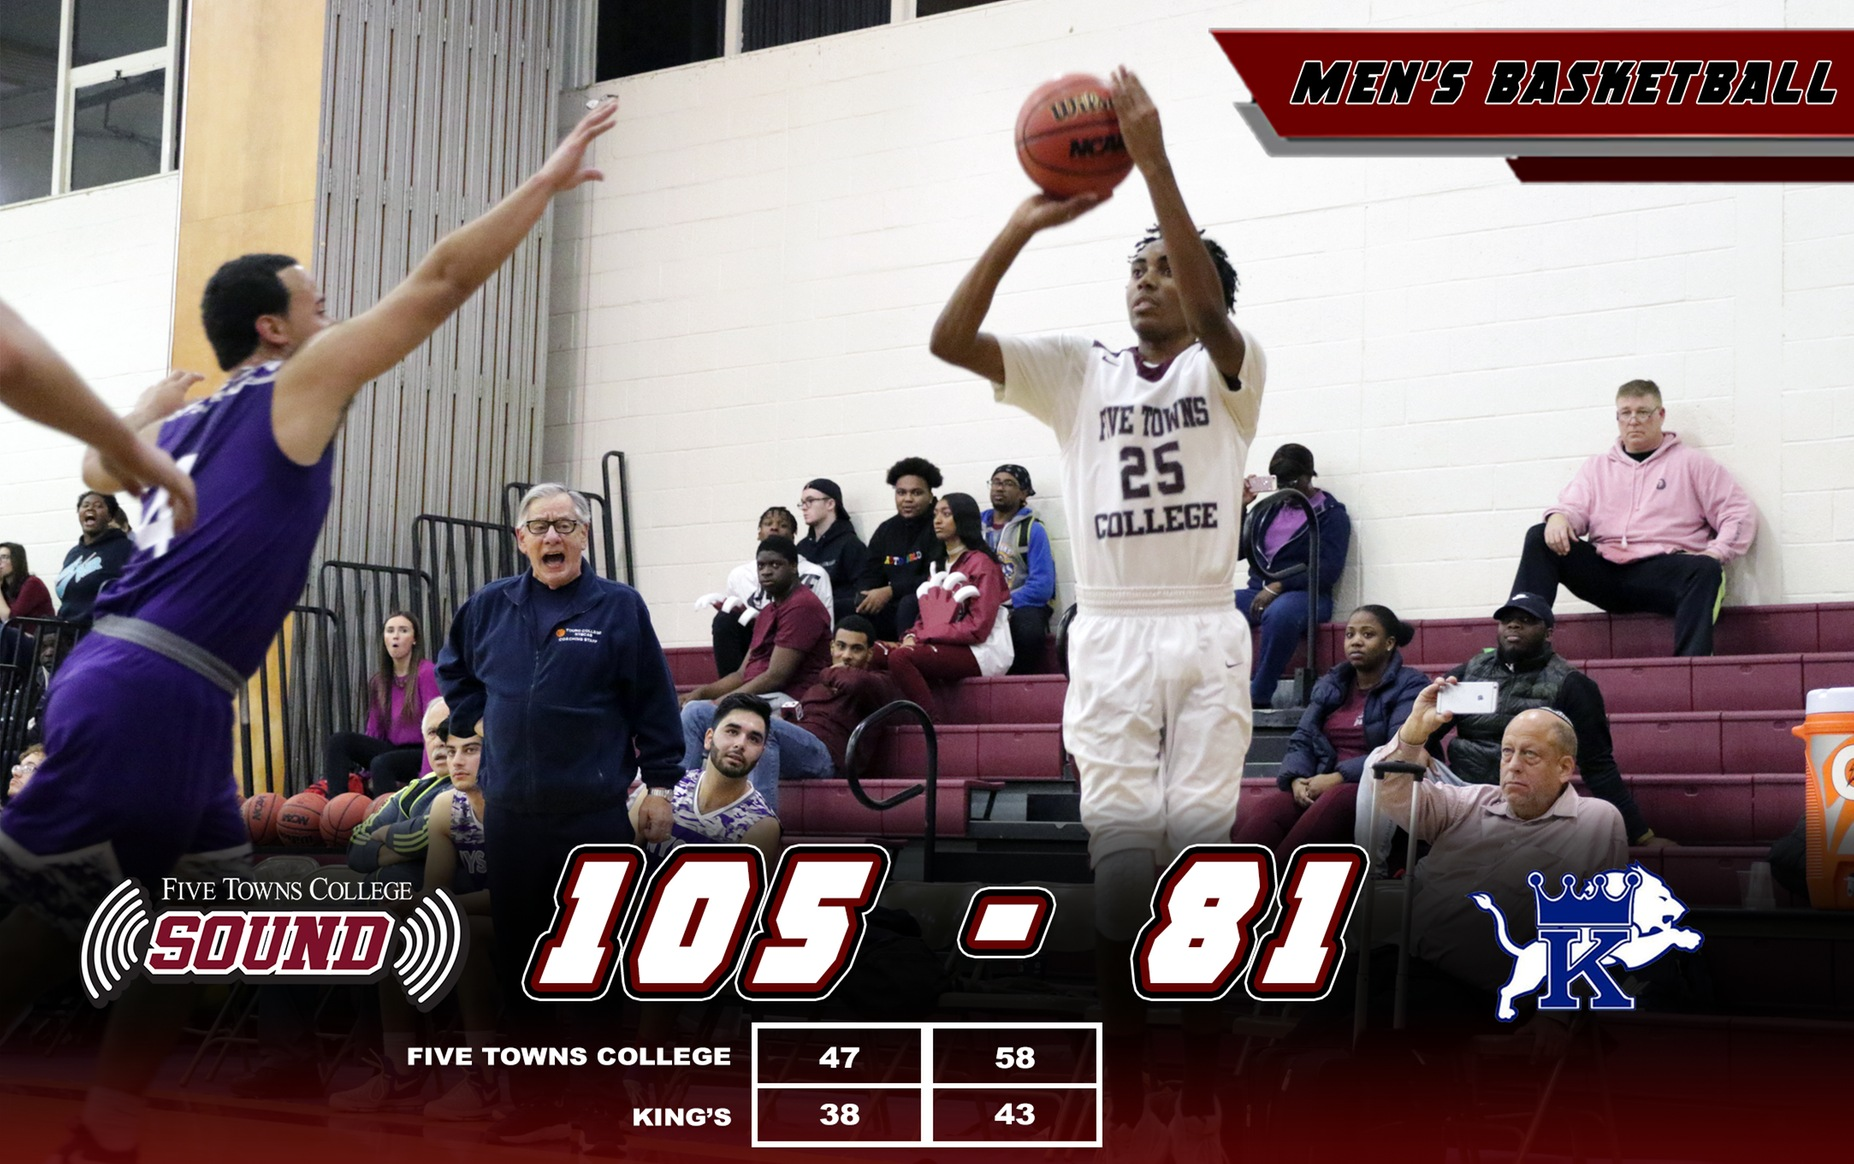 Men's Basketball Improves to 2-0 in Conference Play